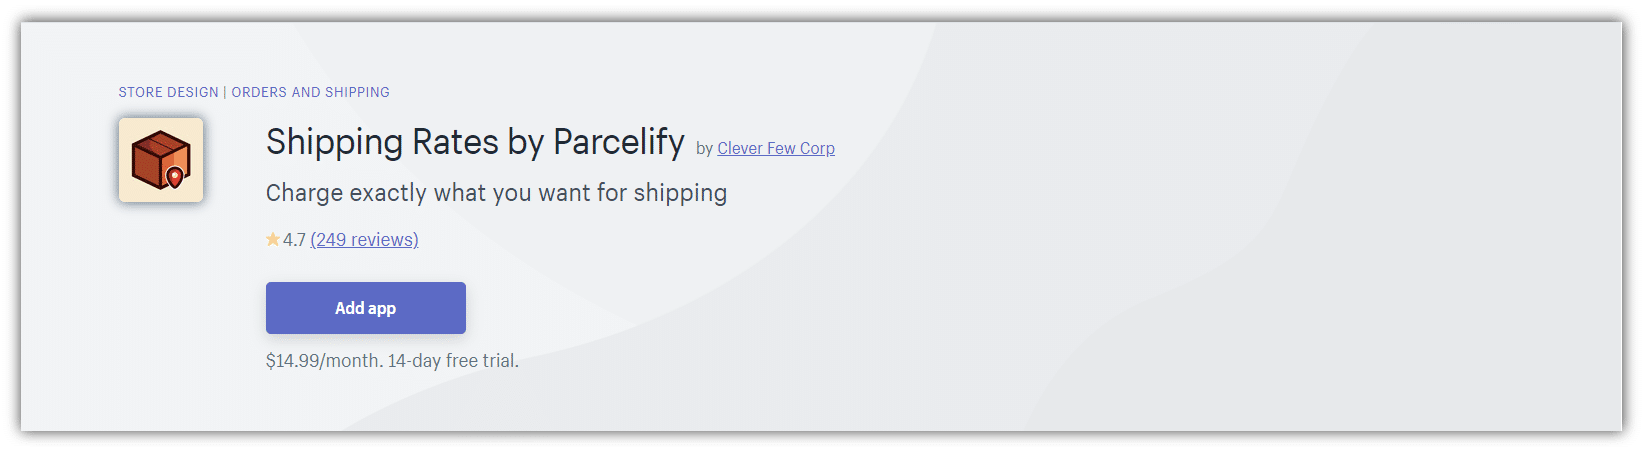 Shipping Rates by Parcelify